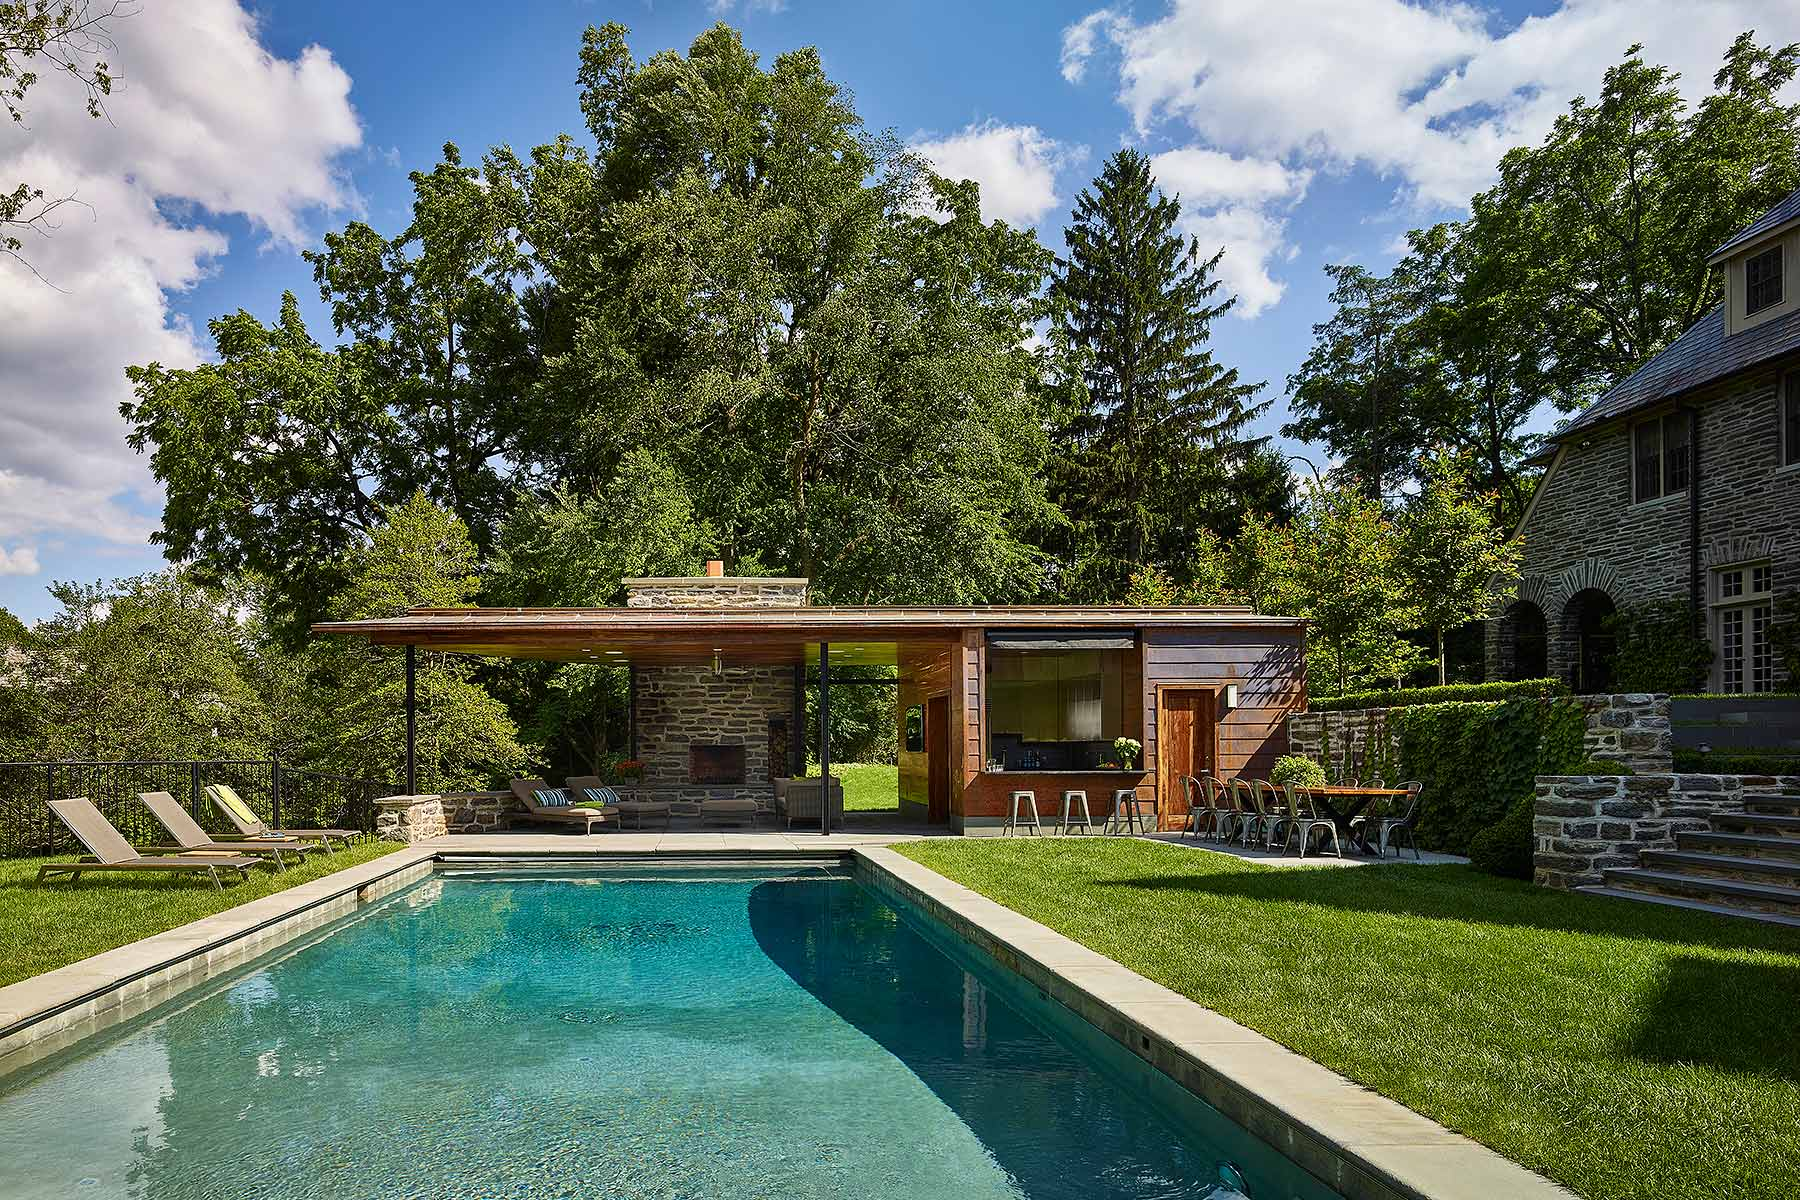 Private Pool House Wyant Architecture Villanova, PA